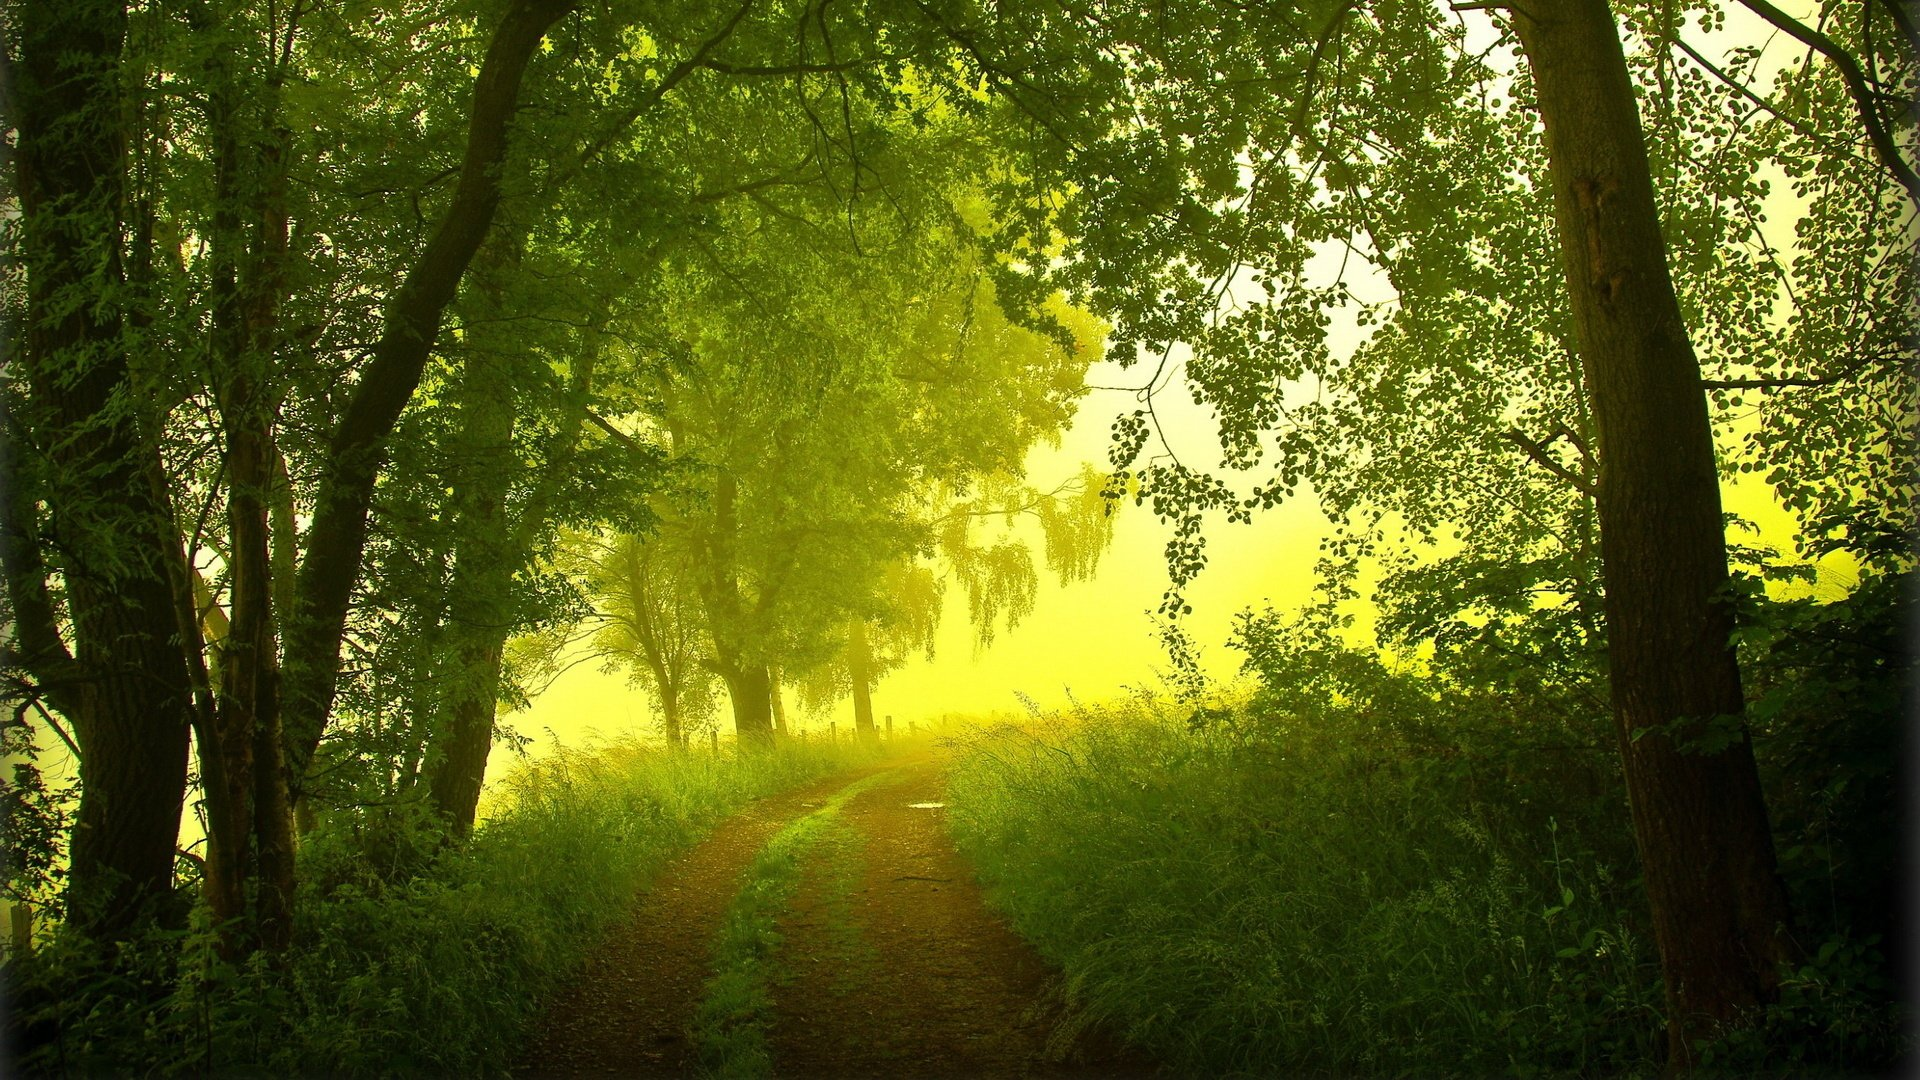 Earth - Forest  Landscape Path Pathway Road Fog Tree Wallpaper